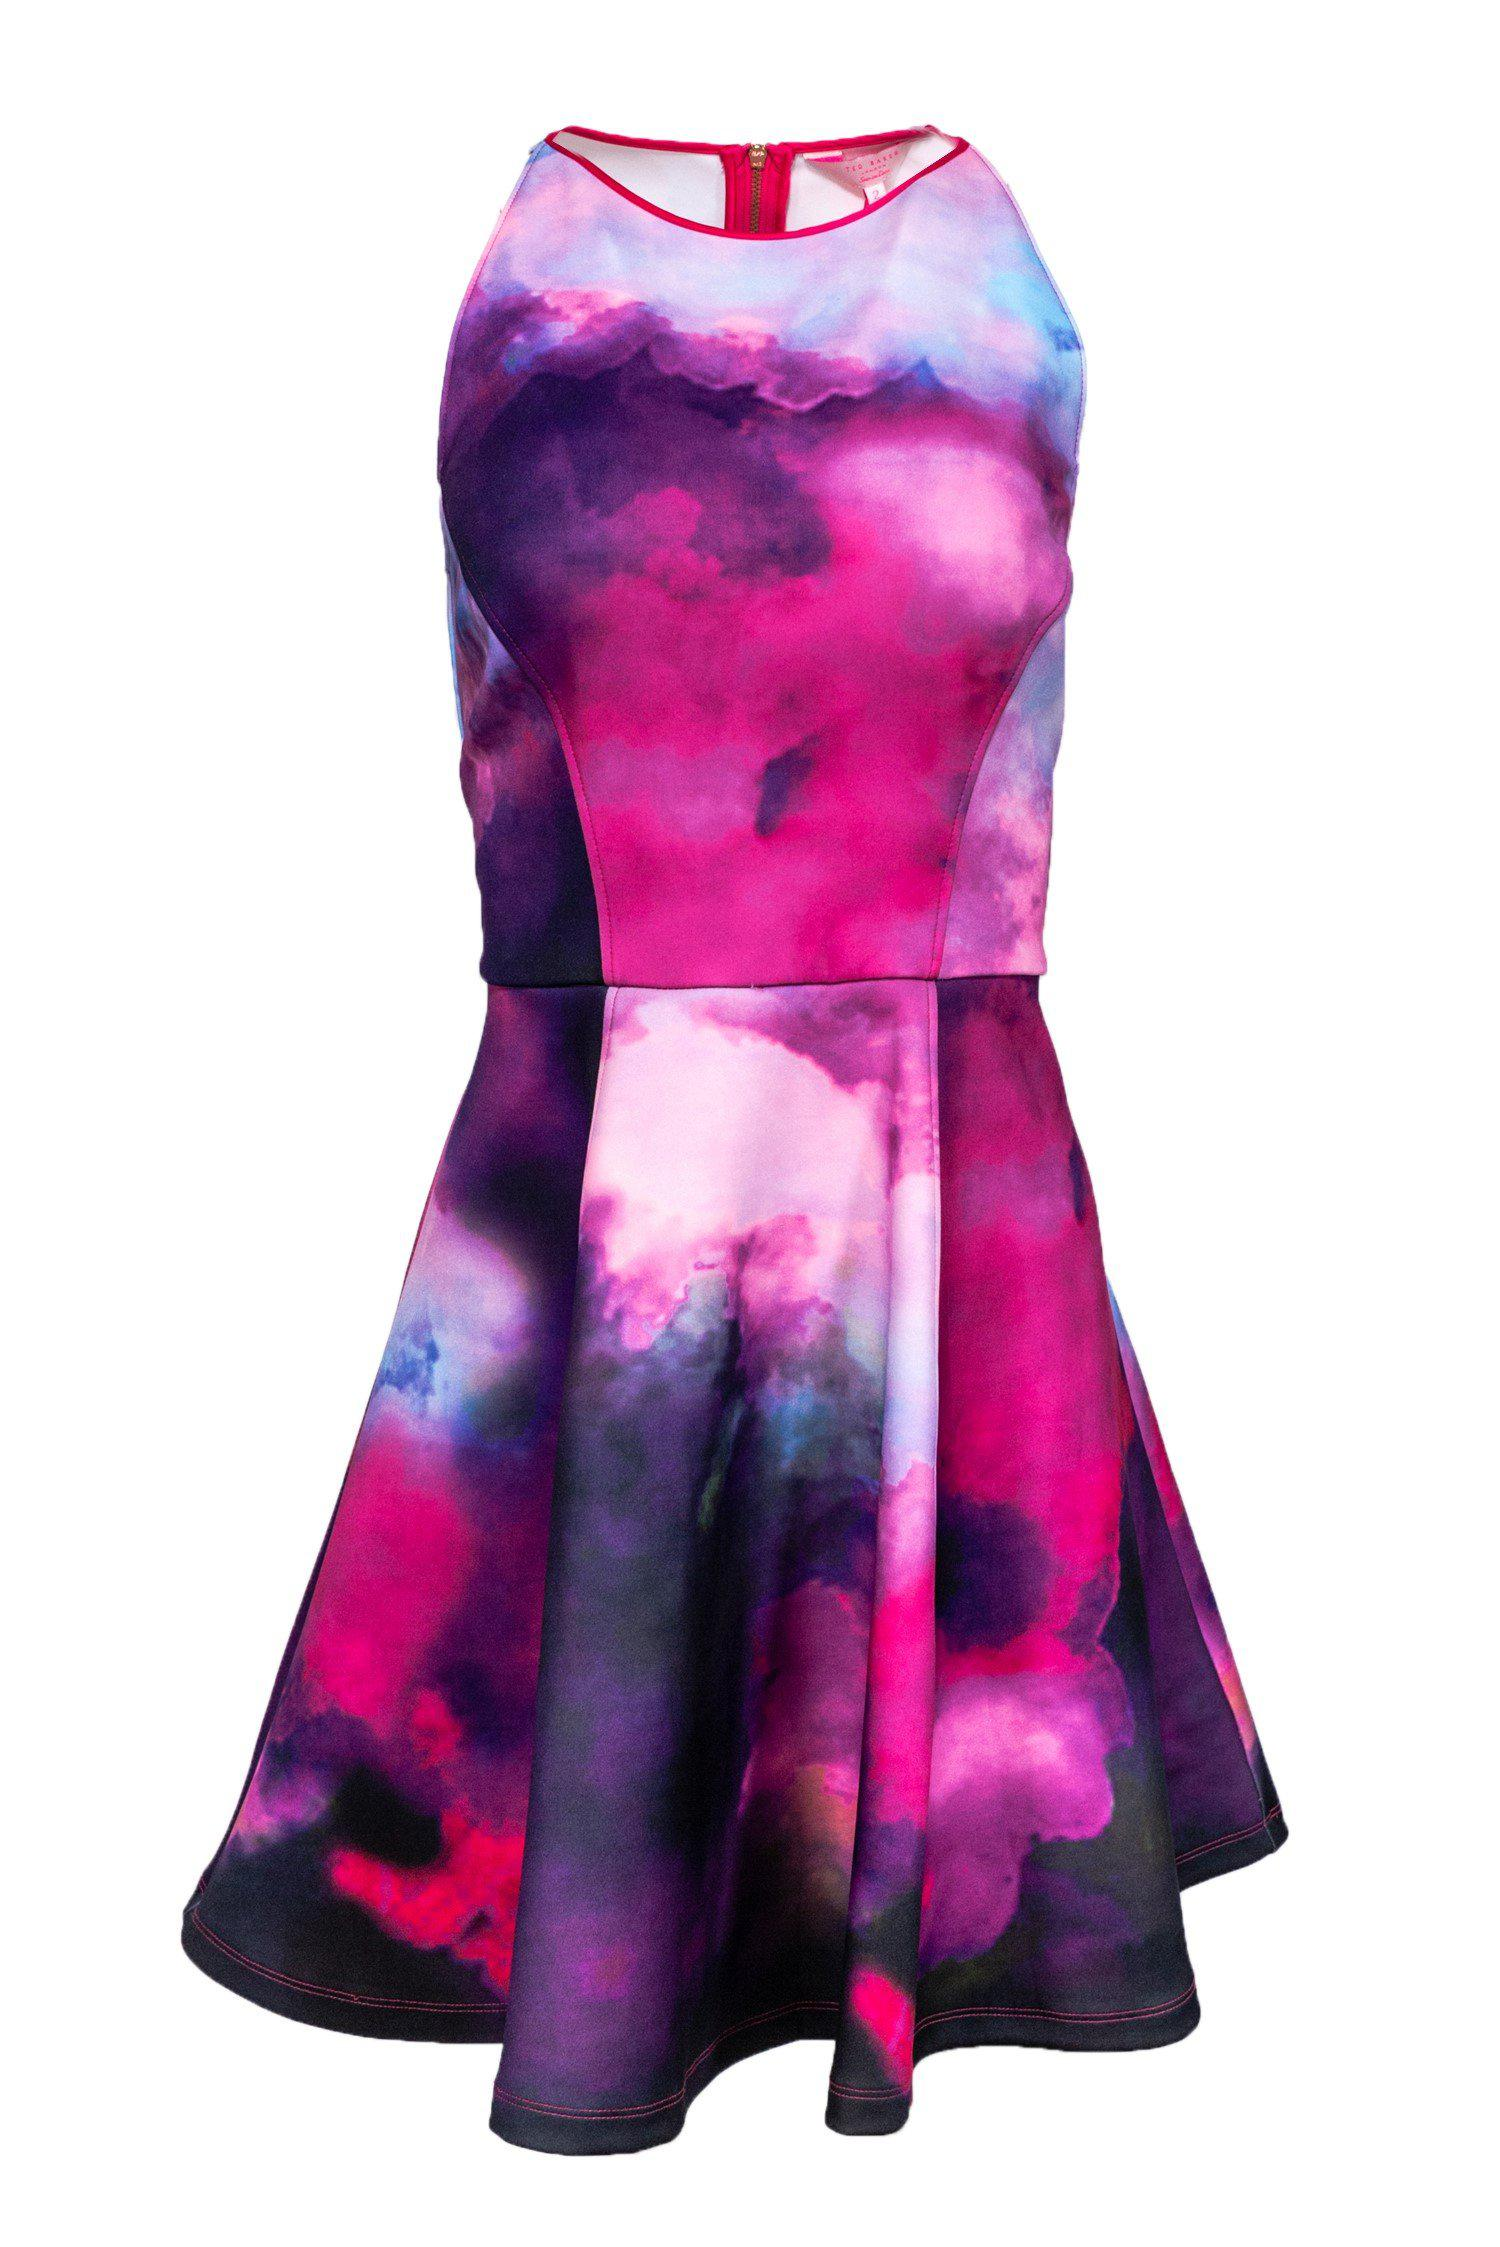 Ted Baker - Multicolored Fit & Flare Dress Sz 6